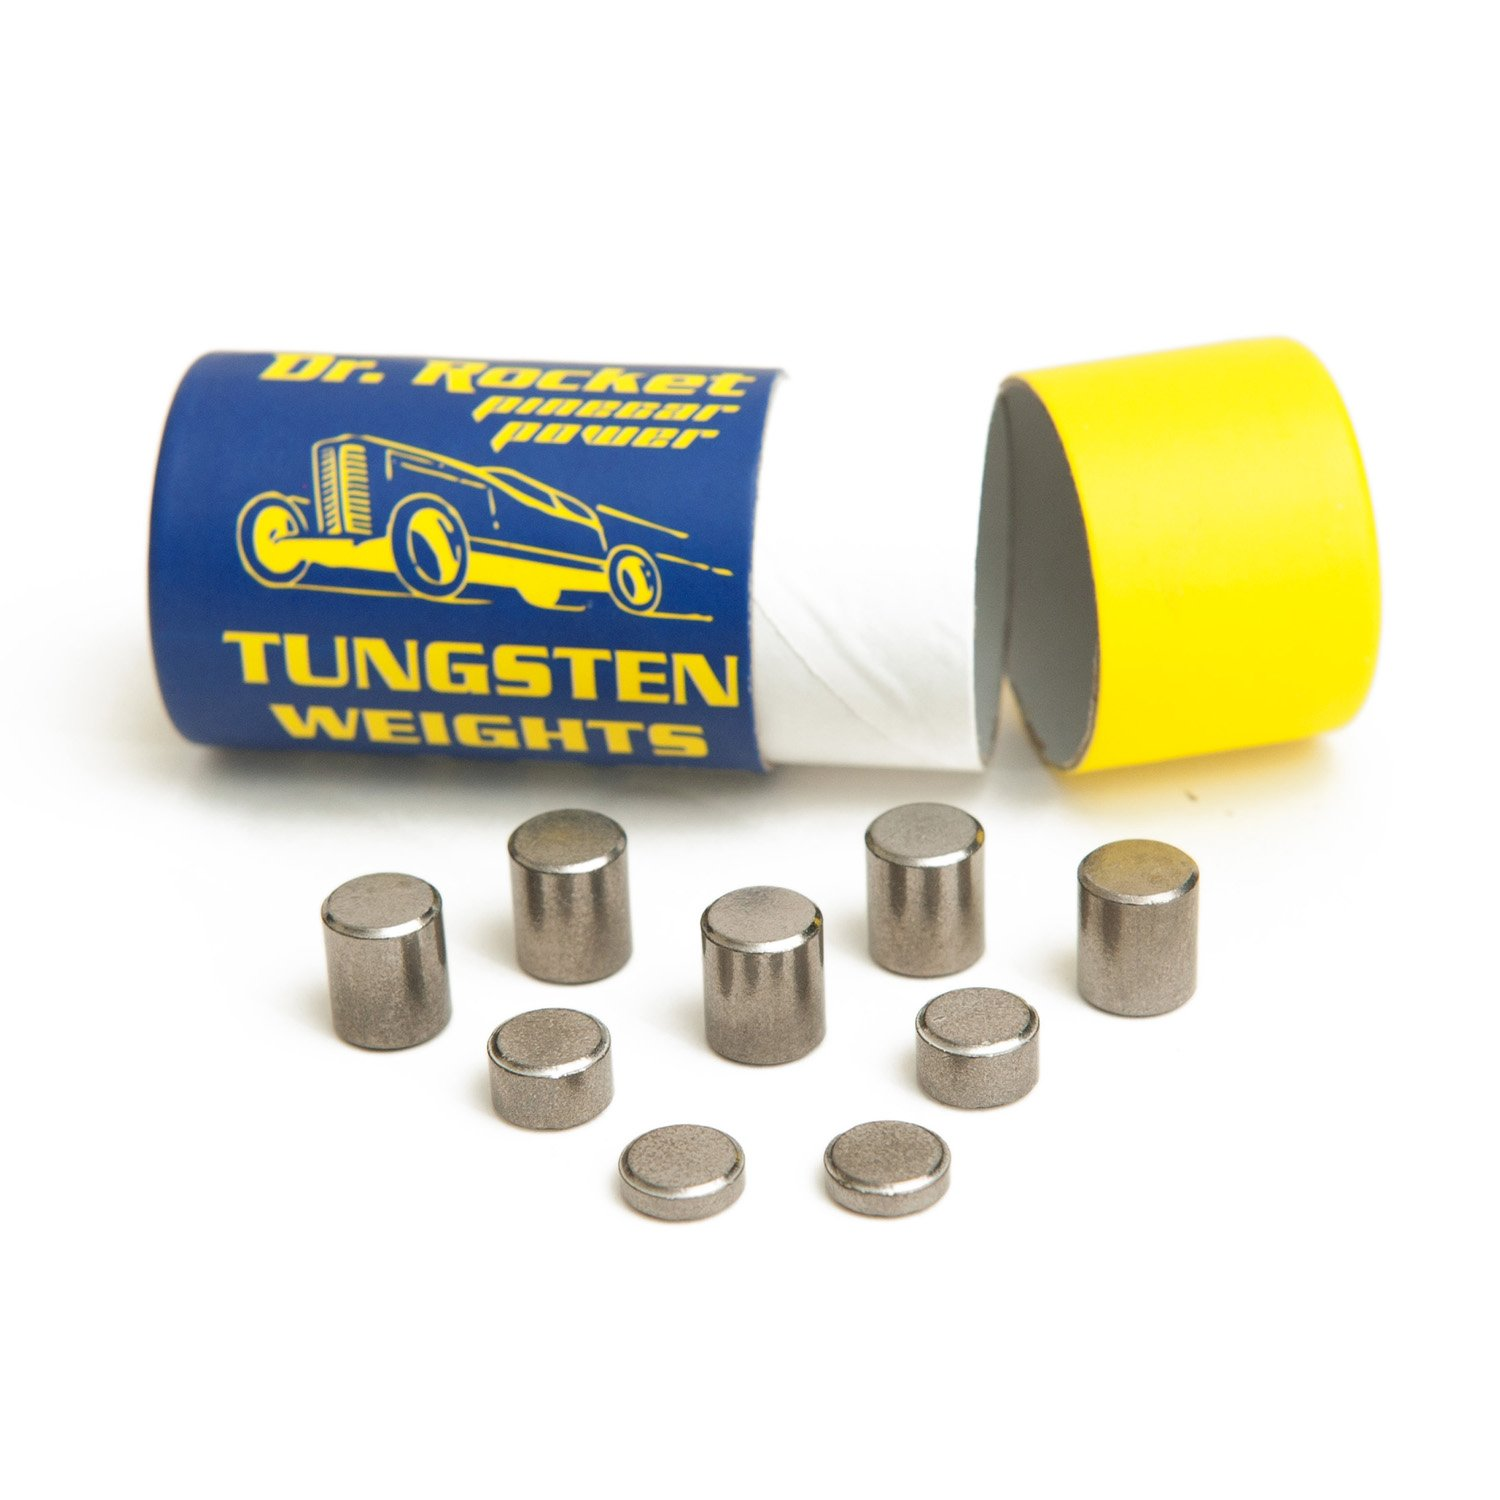 Pinewood Derby Weights Tungsten 3.25oz. Pinecar Power with Varied Sizes of Incremental Cylinders. Heavy with No Lead. by Rocket Box